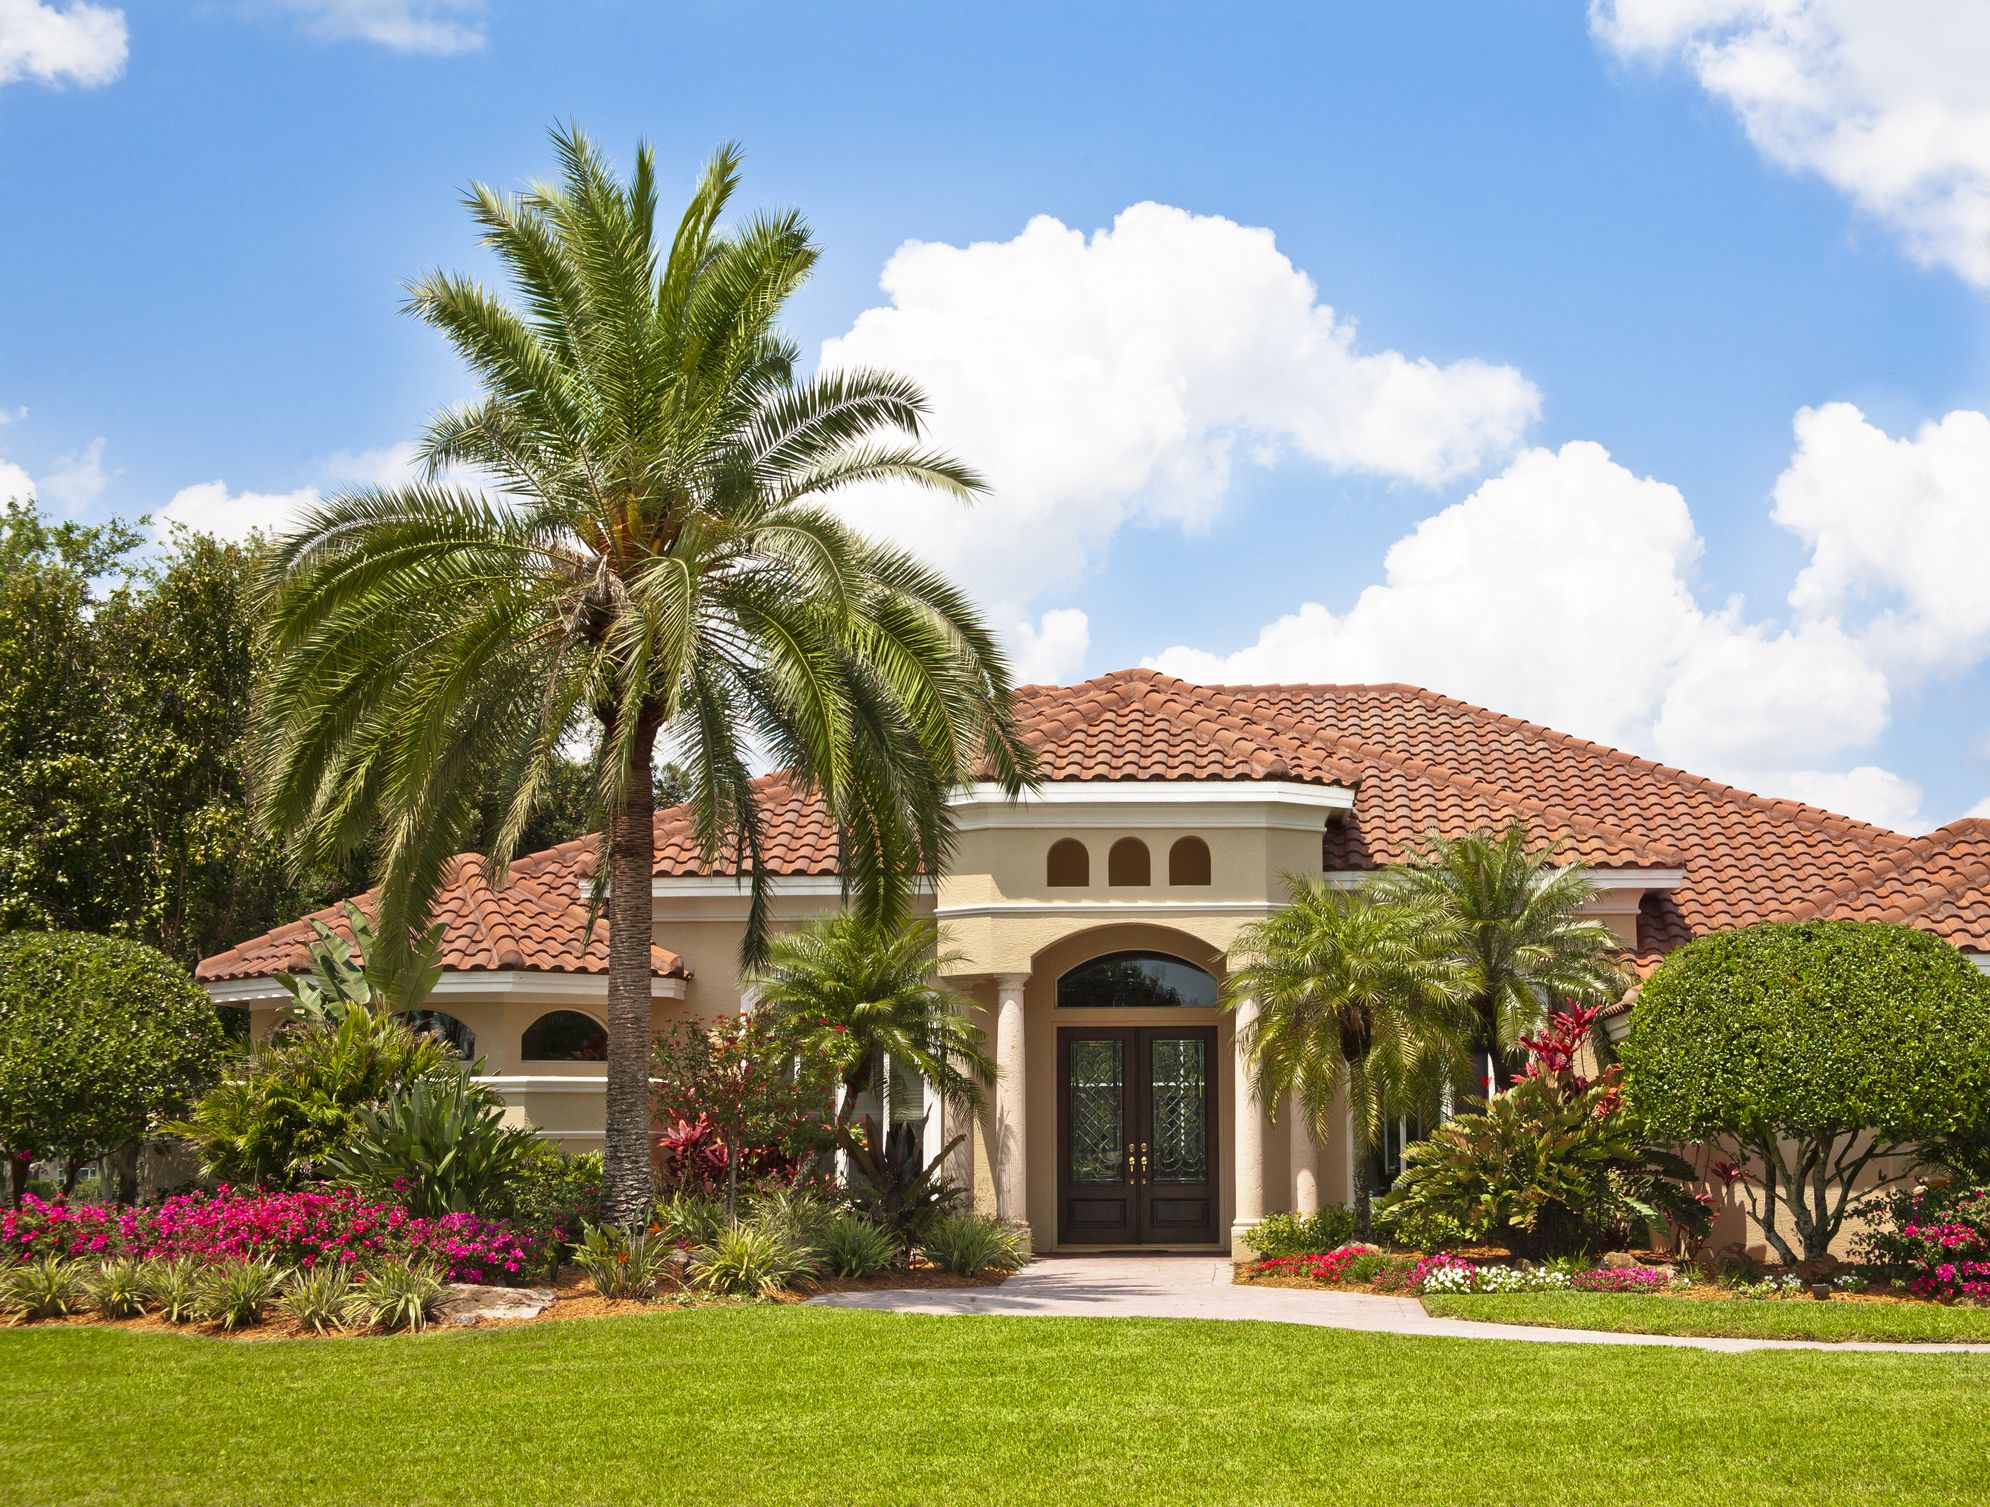 Palm trees in front yard with tiled-roof house in background.